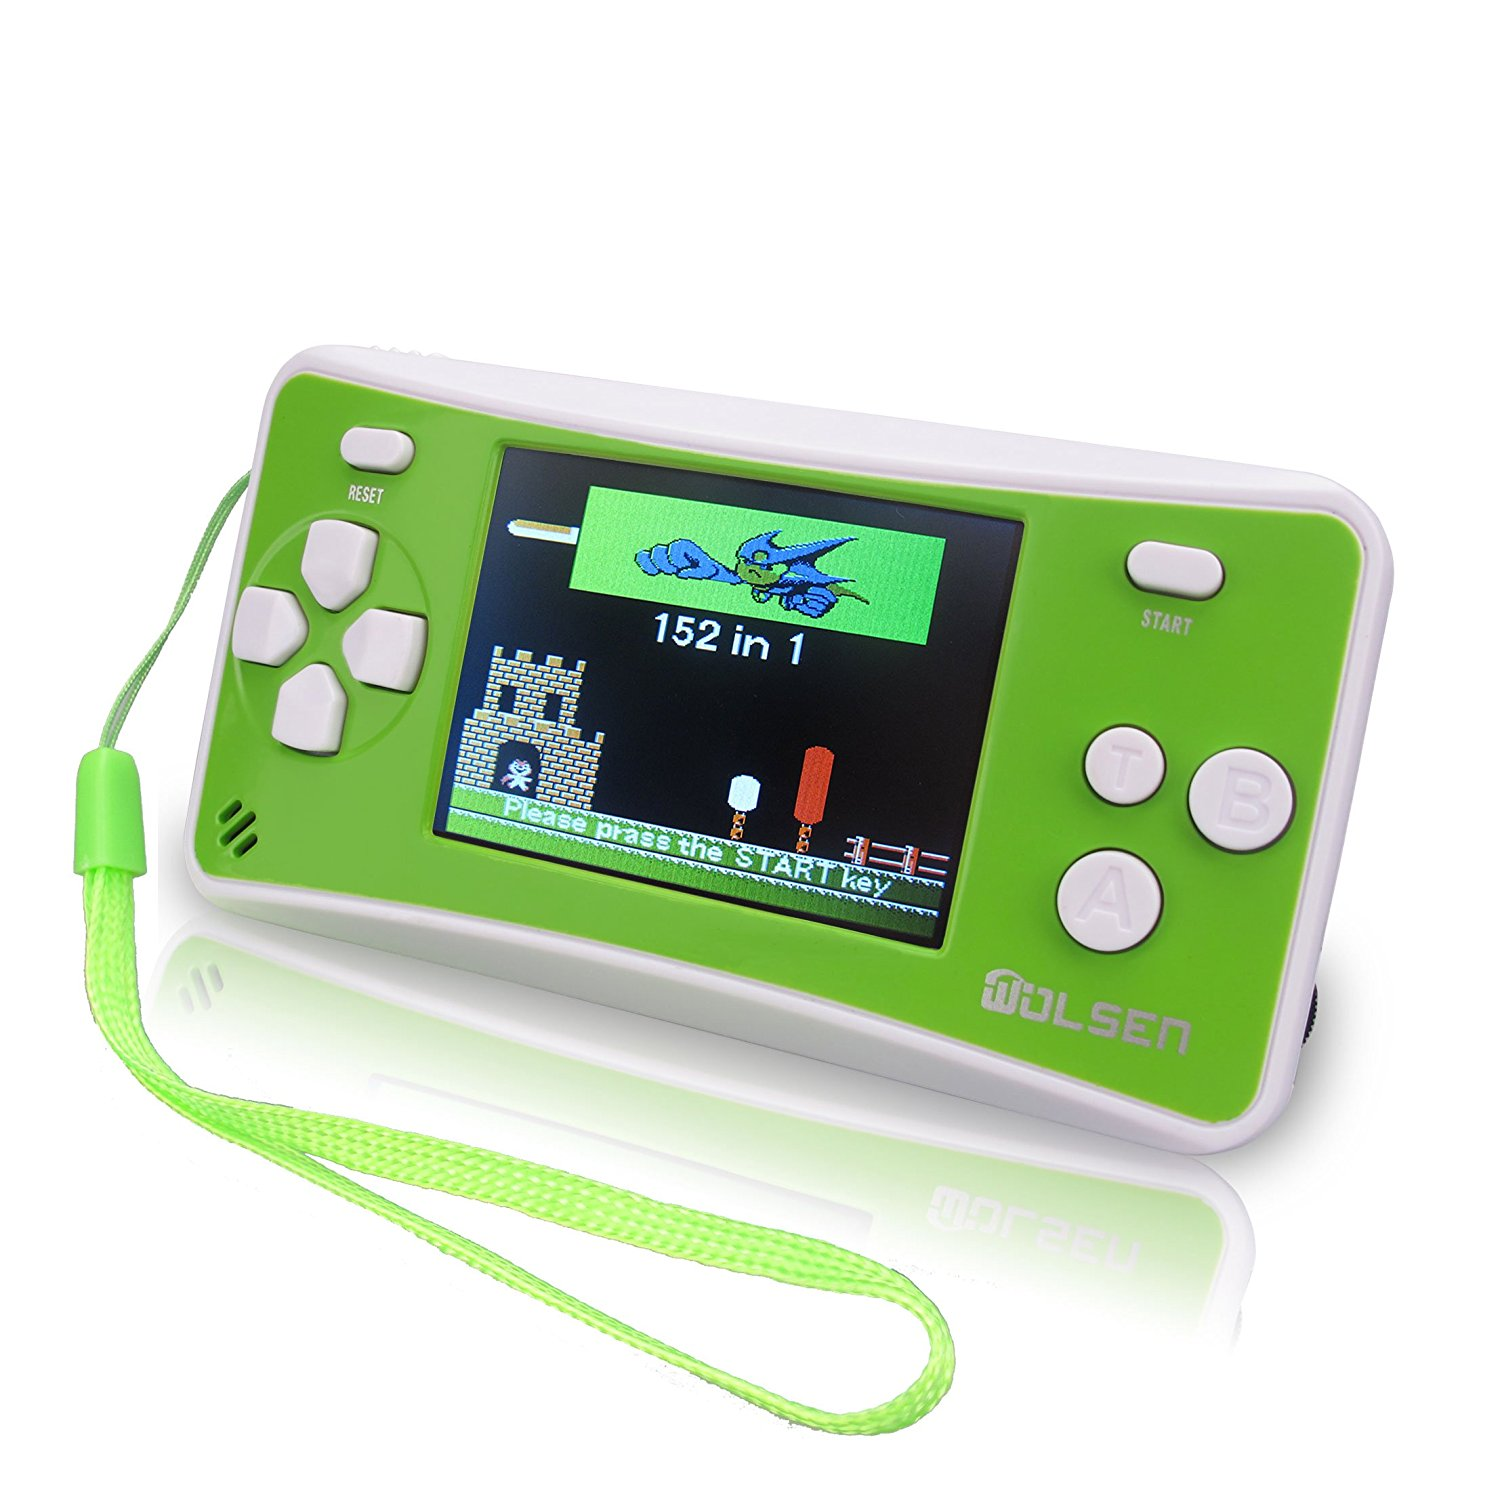 2 5 Color Portable Handheld Game Console W 152 Games